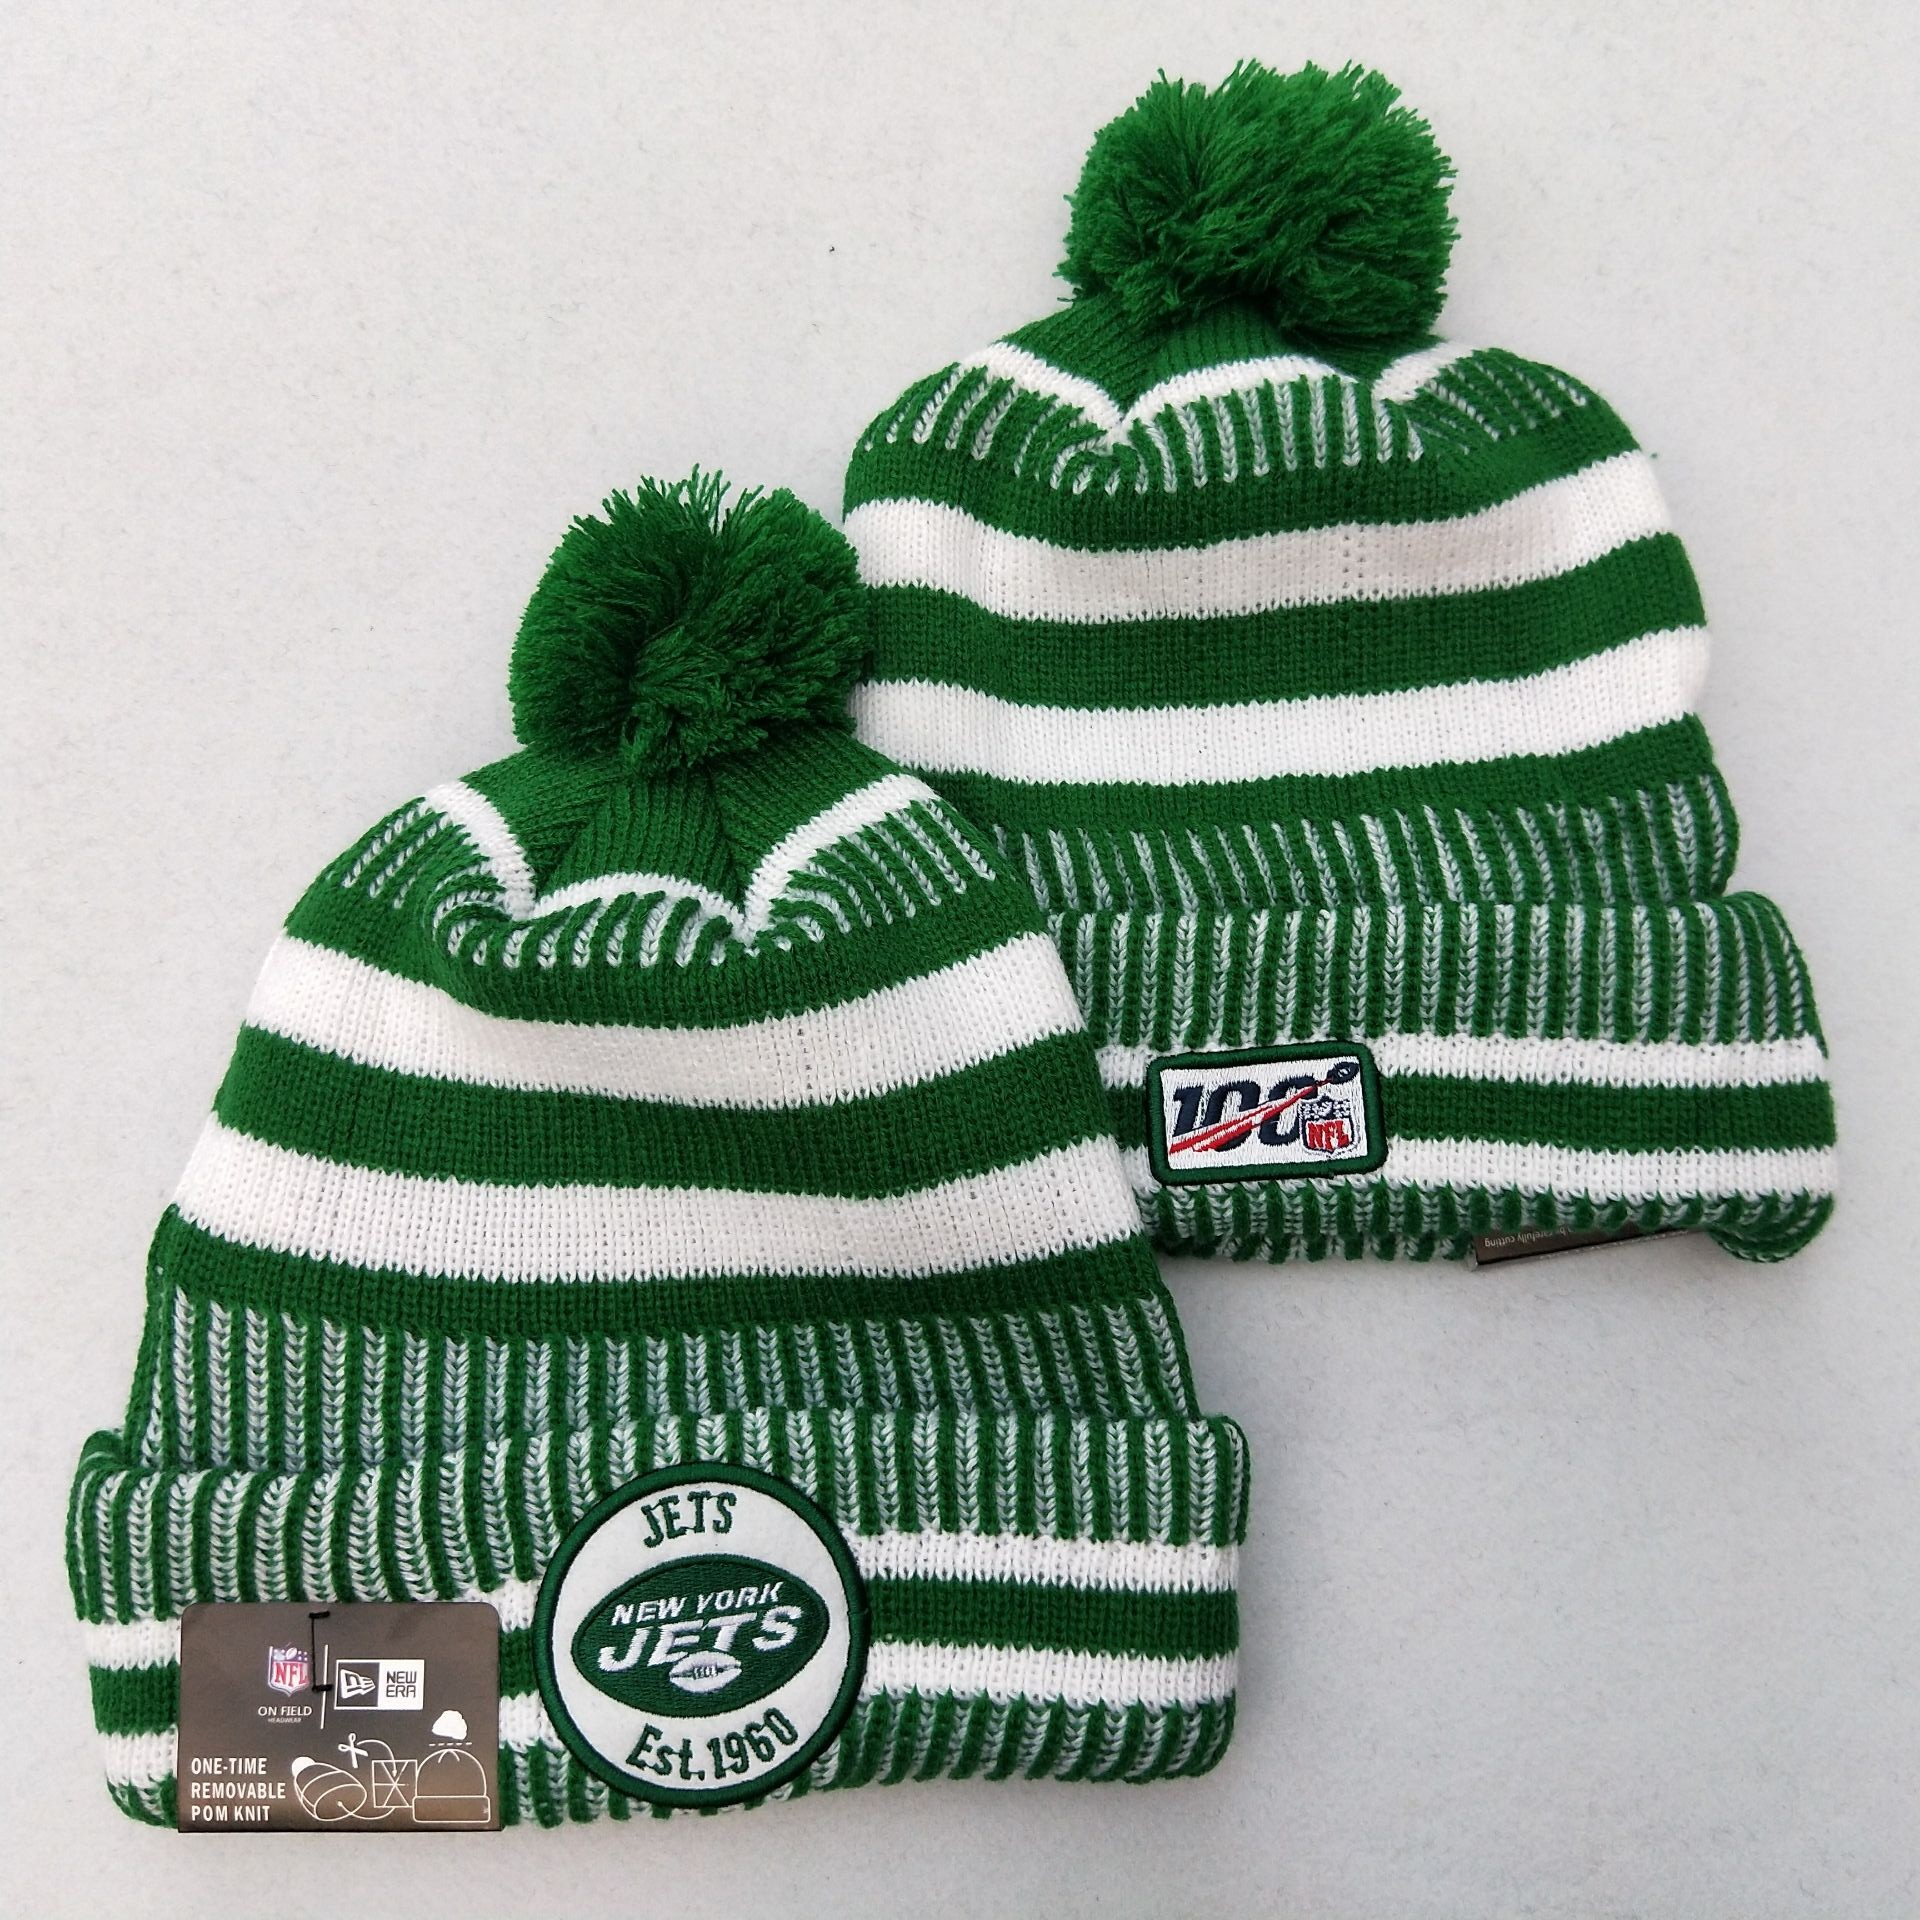 Jets Team Logo Green 100th Season Pom Knit Hat YD